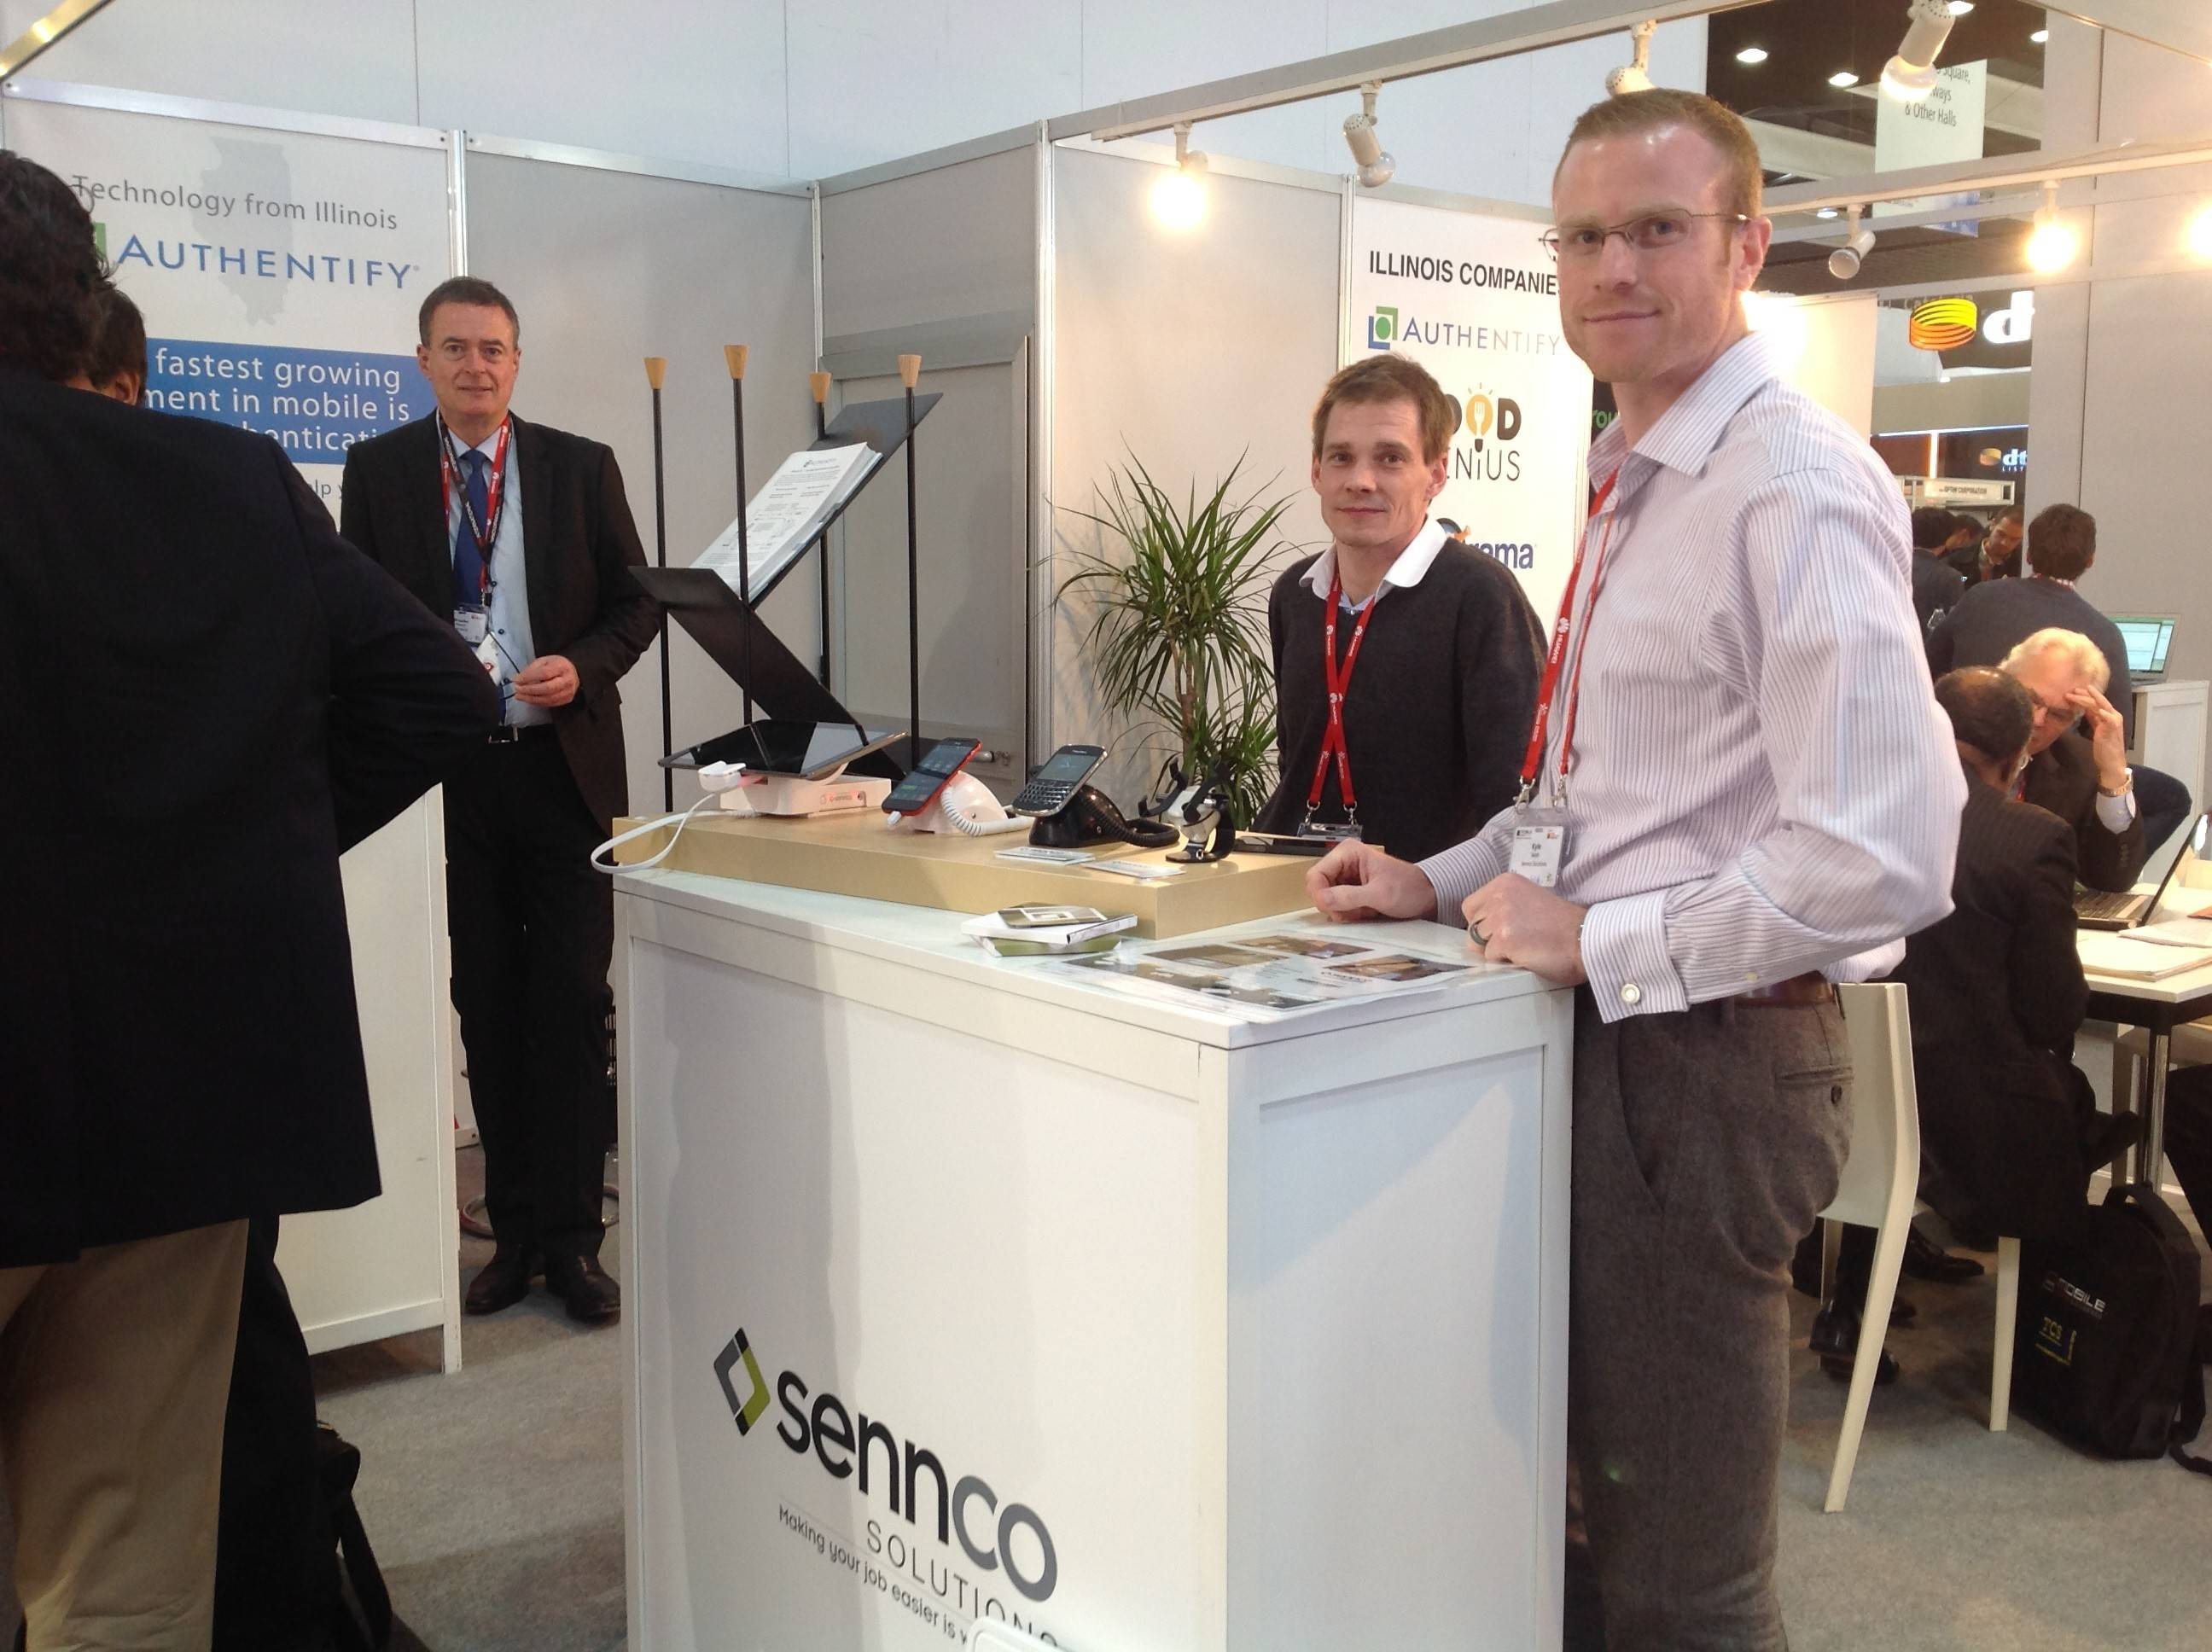 Sennco Solutions Inc. of Plainfield participated in the Mobile World Congress this week in Barcelona, Spain.